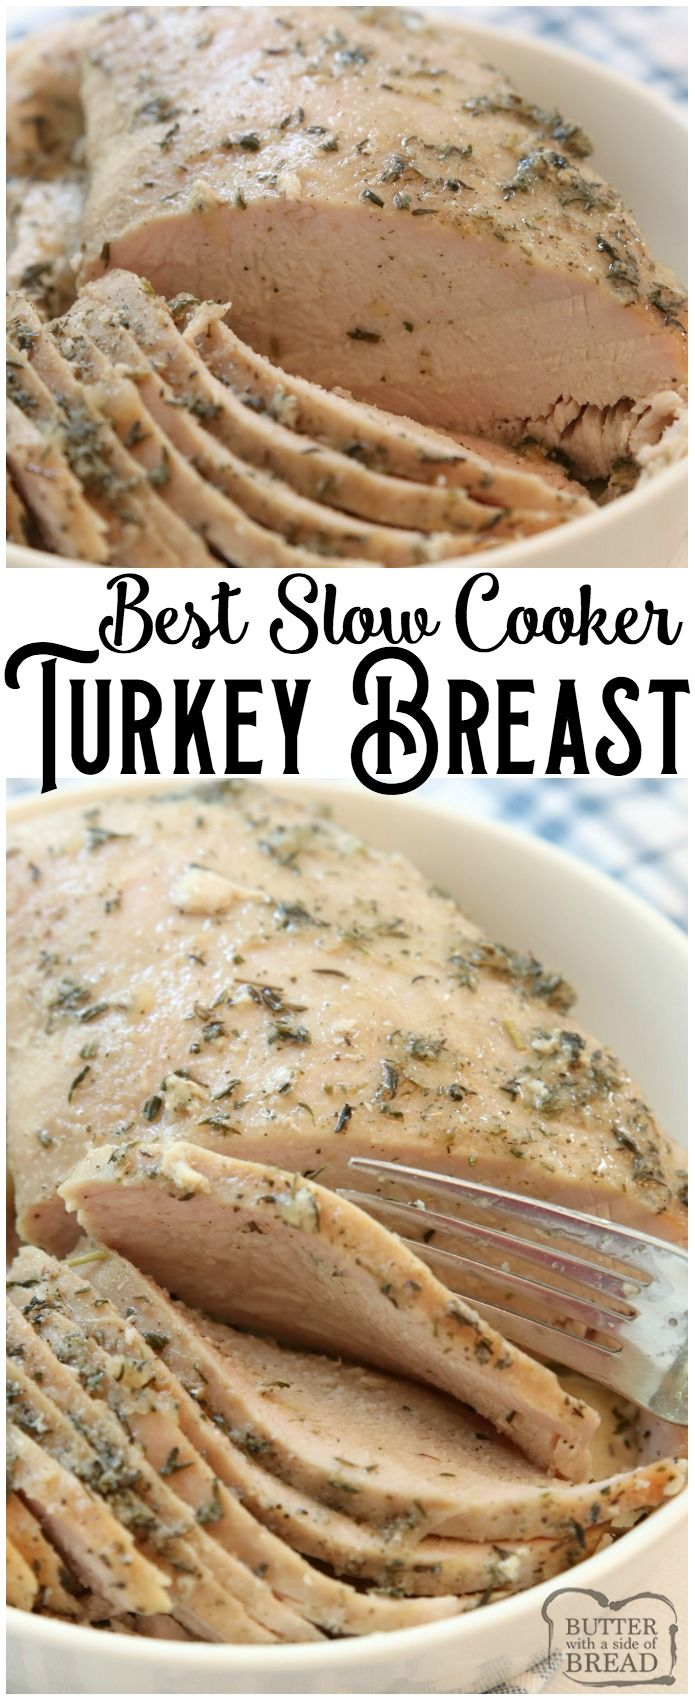 Easy Slow Cooker Turkey Breast recipe made with butter, a sliced apple and a basic mix of traditional seasonings. Crock pot turkey breast recipe perfect for any time of the year! #slowcooker #crockpot #turkey #turkeybreast #protein #recipe #dinner #food from BUTTER WITH A SIDE OF BREAD #fallrecipesdinner